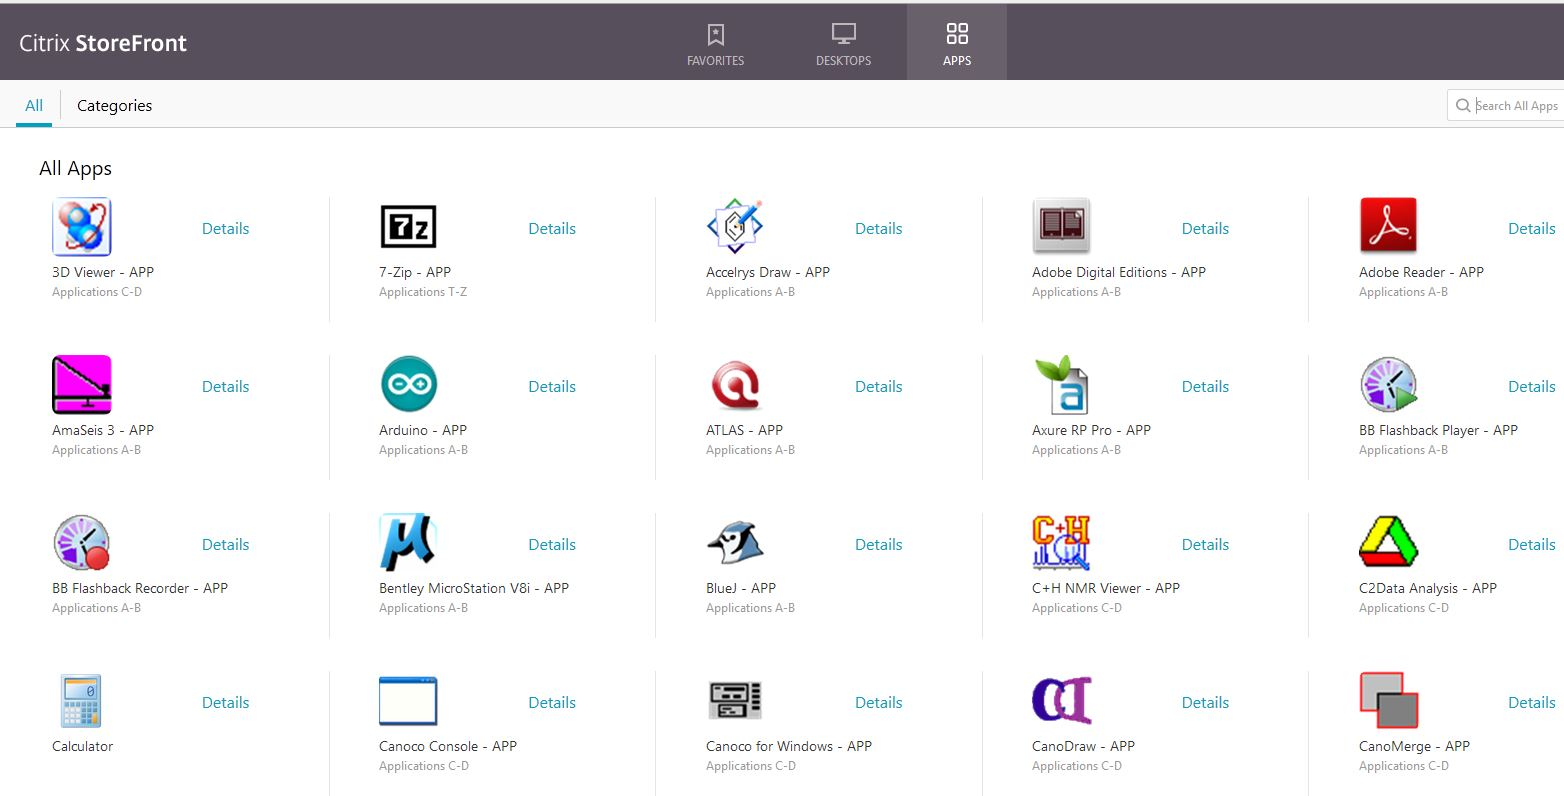 Desktop@UCL Anywhere: Using the Citrix StoreFront